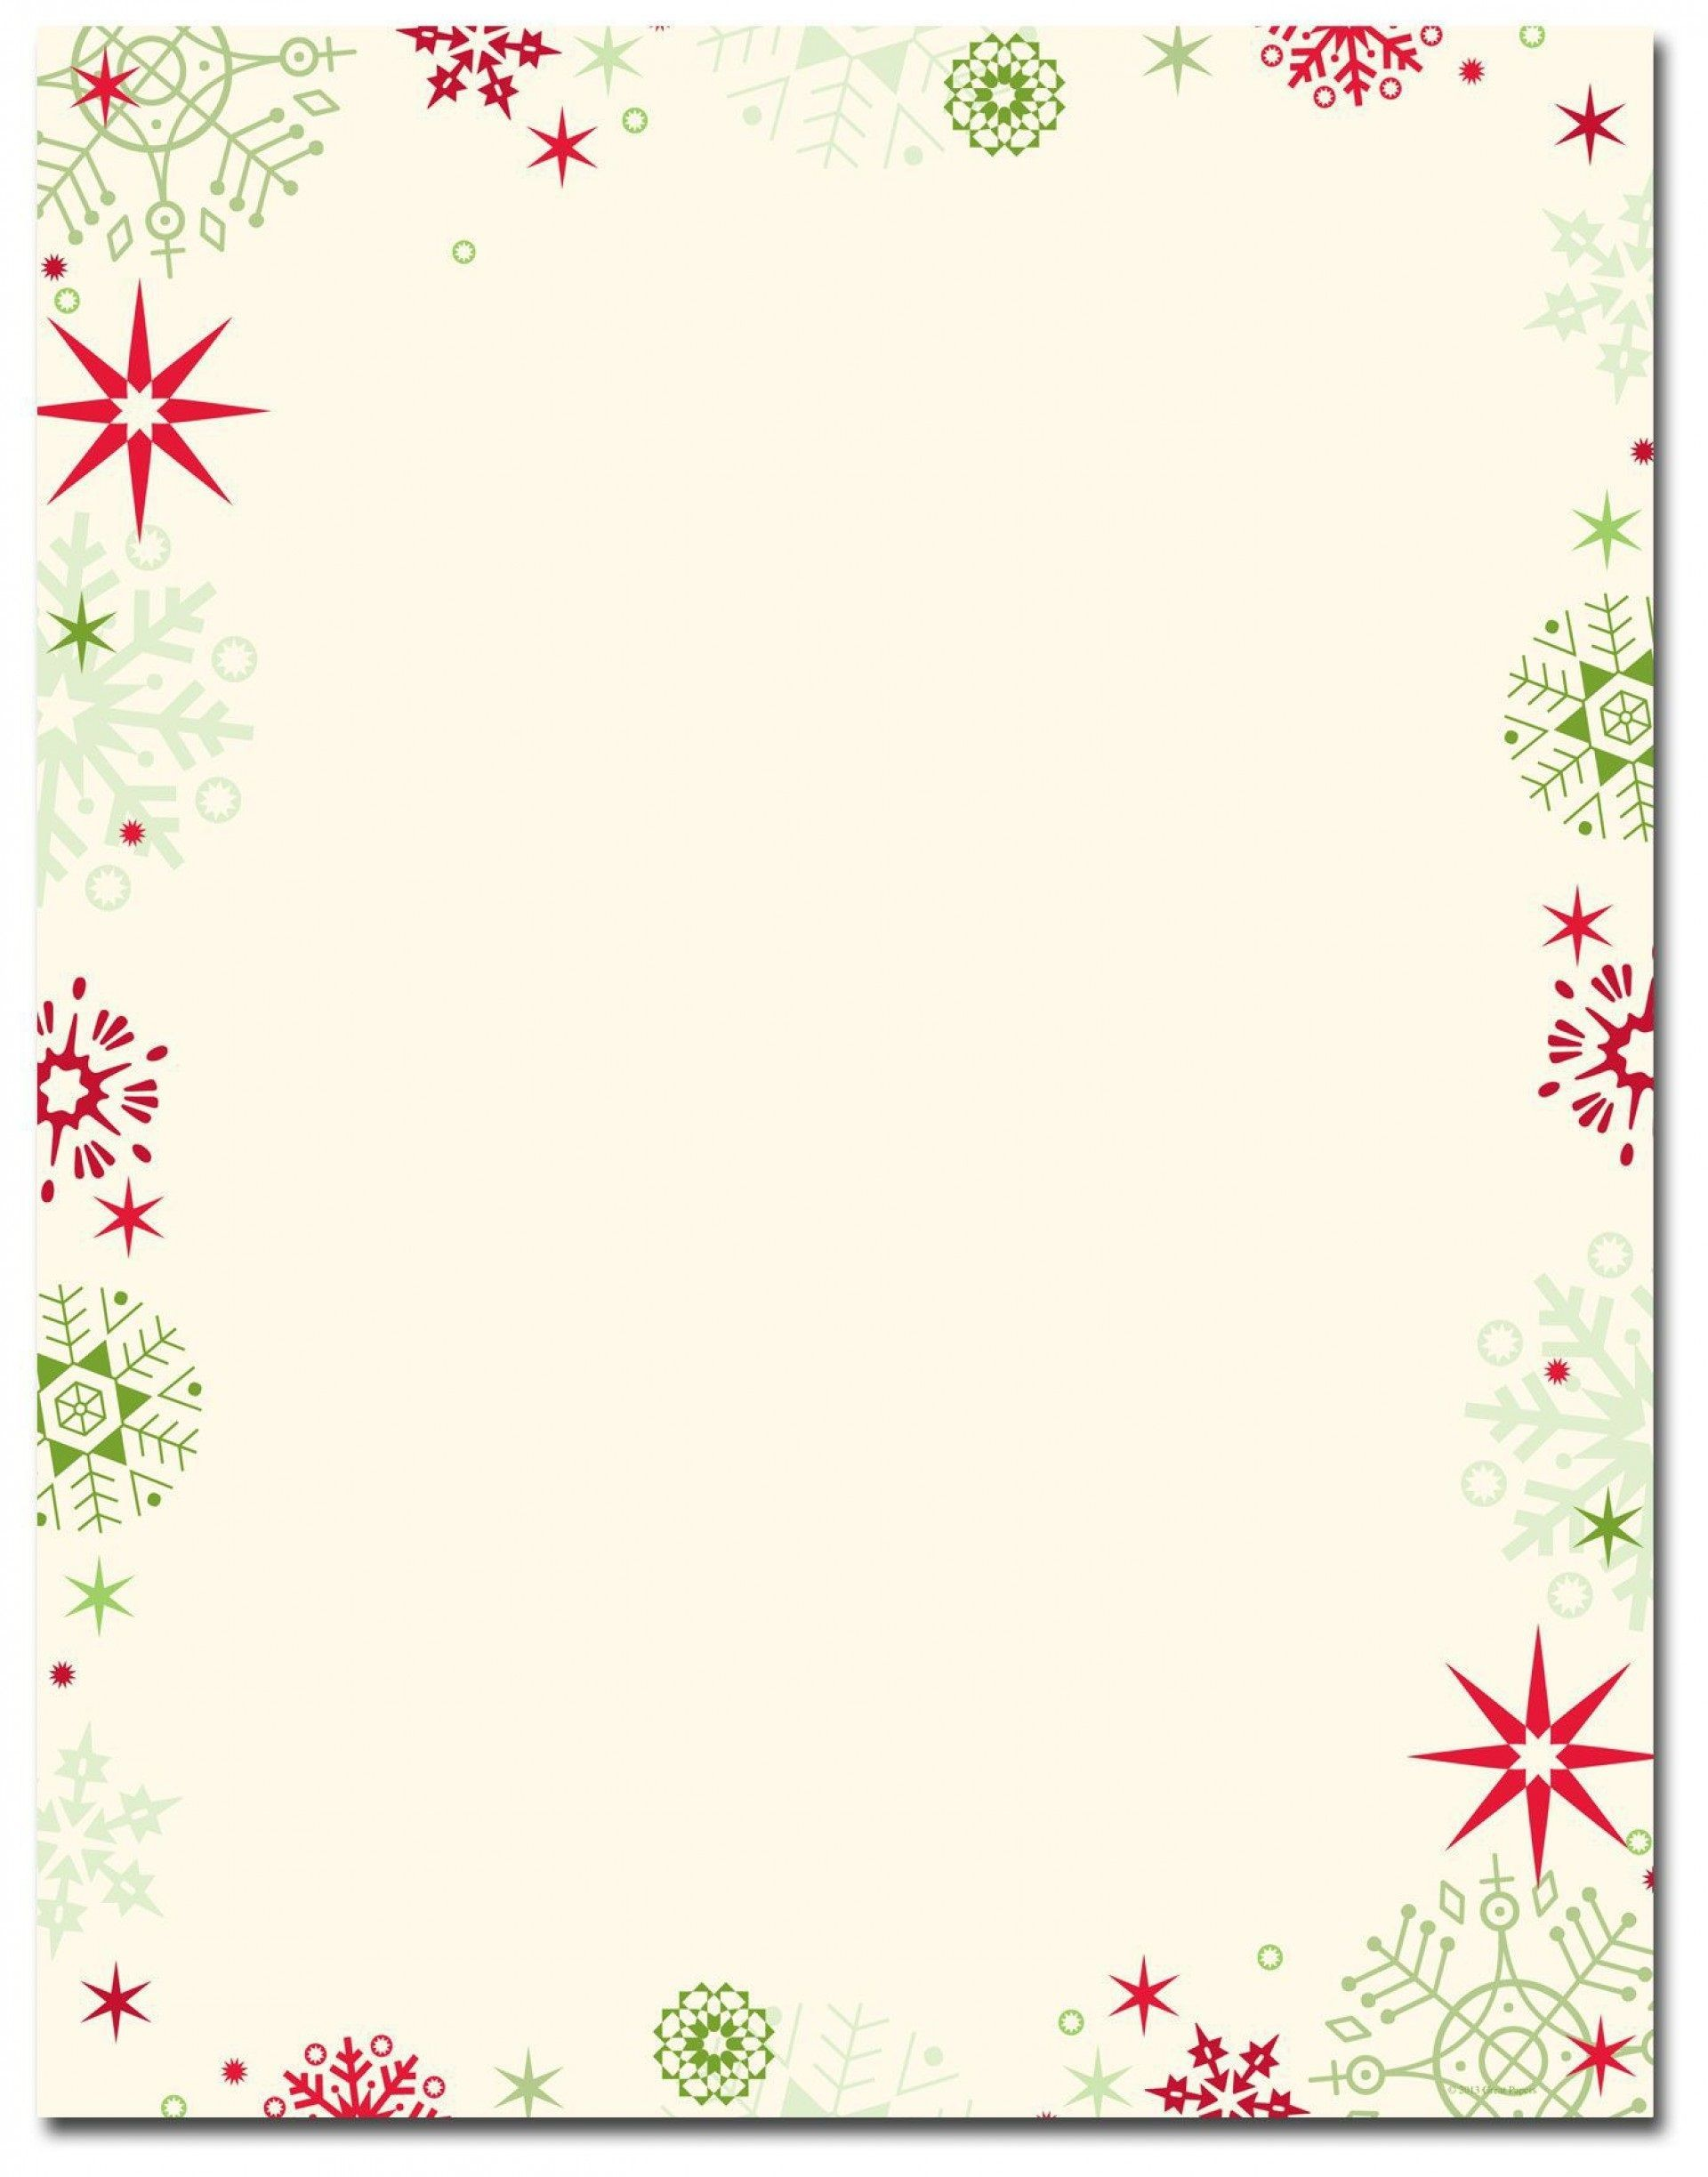 005 Formidable Free Christian Christma Stationery Template For Word Concept 1920